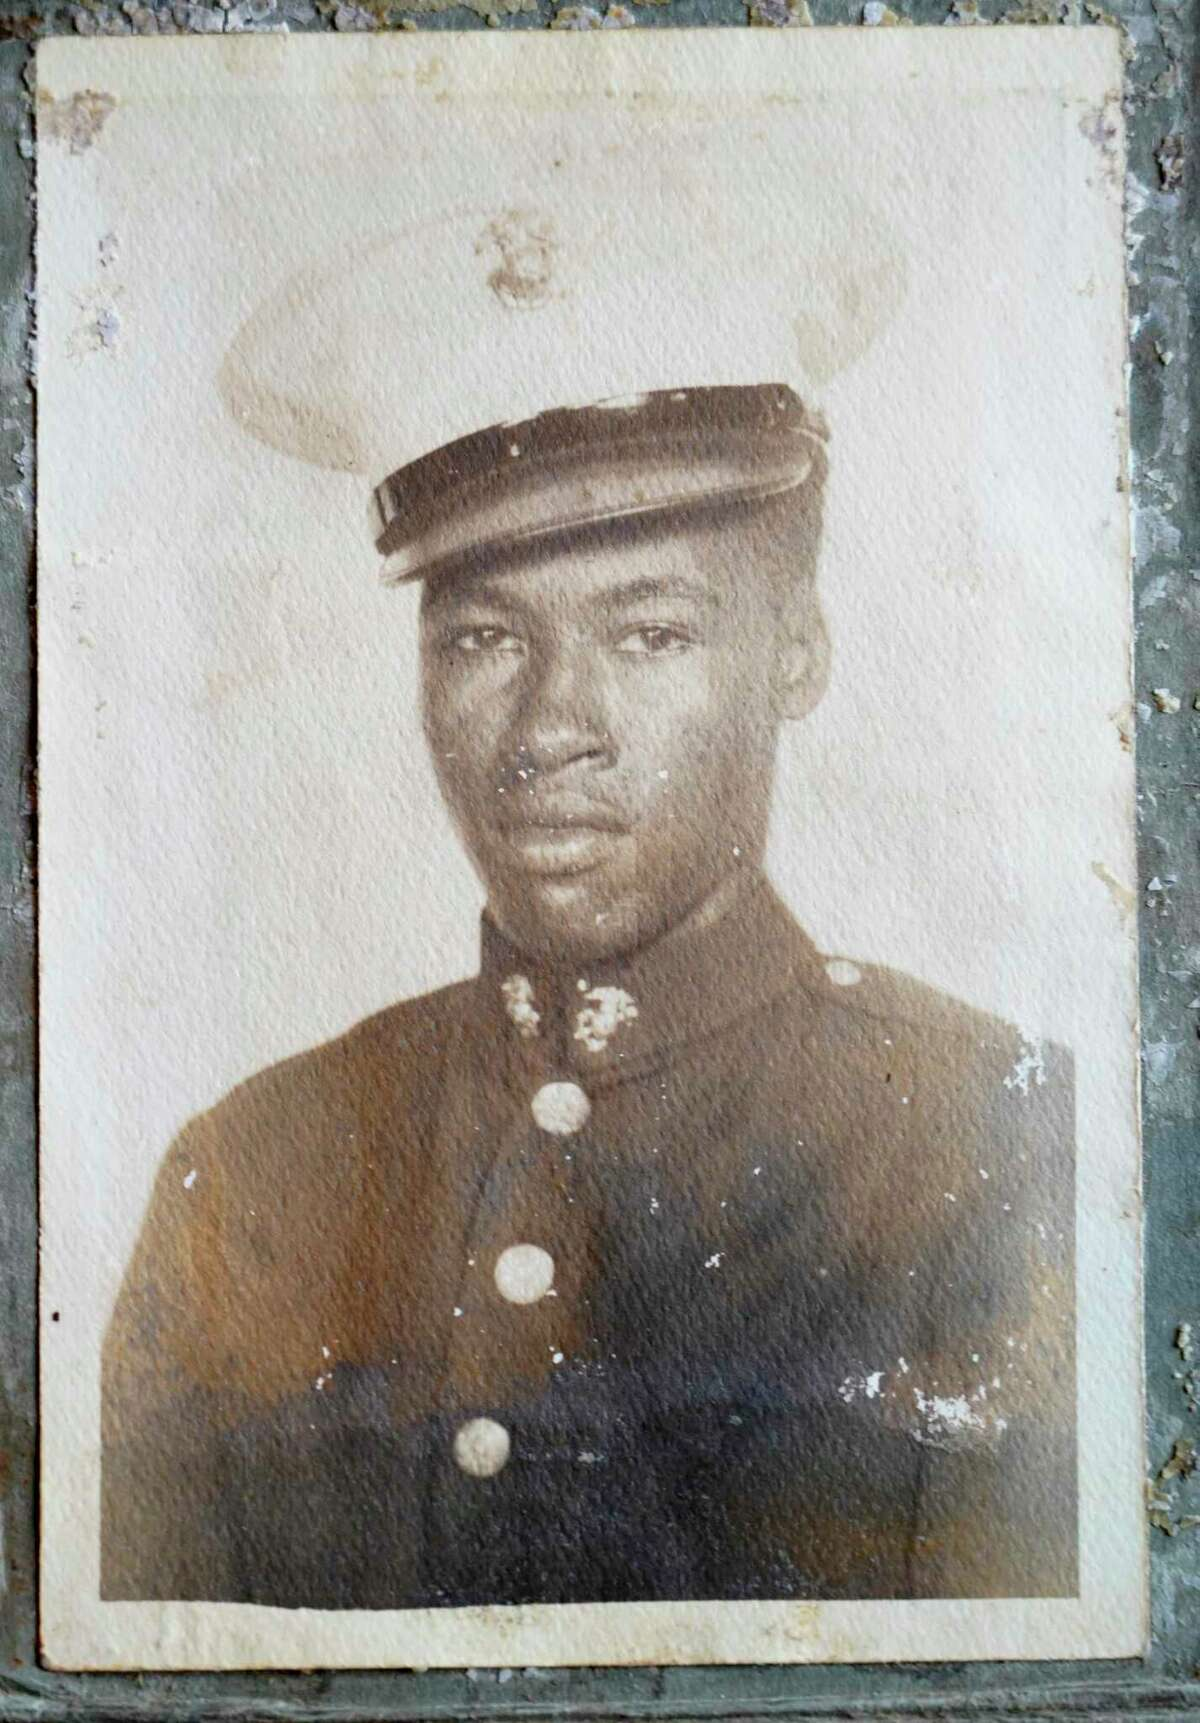 An undated family photo of Cpl. Arthur Jackson taken in his Marine uniform is shown Friday, July 9, 2021 in Houston. Jackson, 99, was one of the original Montford Point Marines. He served from 1943 through 1946. He will be receiving a replica Montford Point Marines Congressional Gold Medal on Saturday.